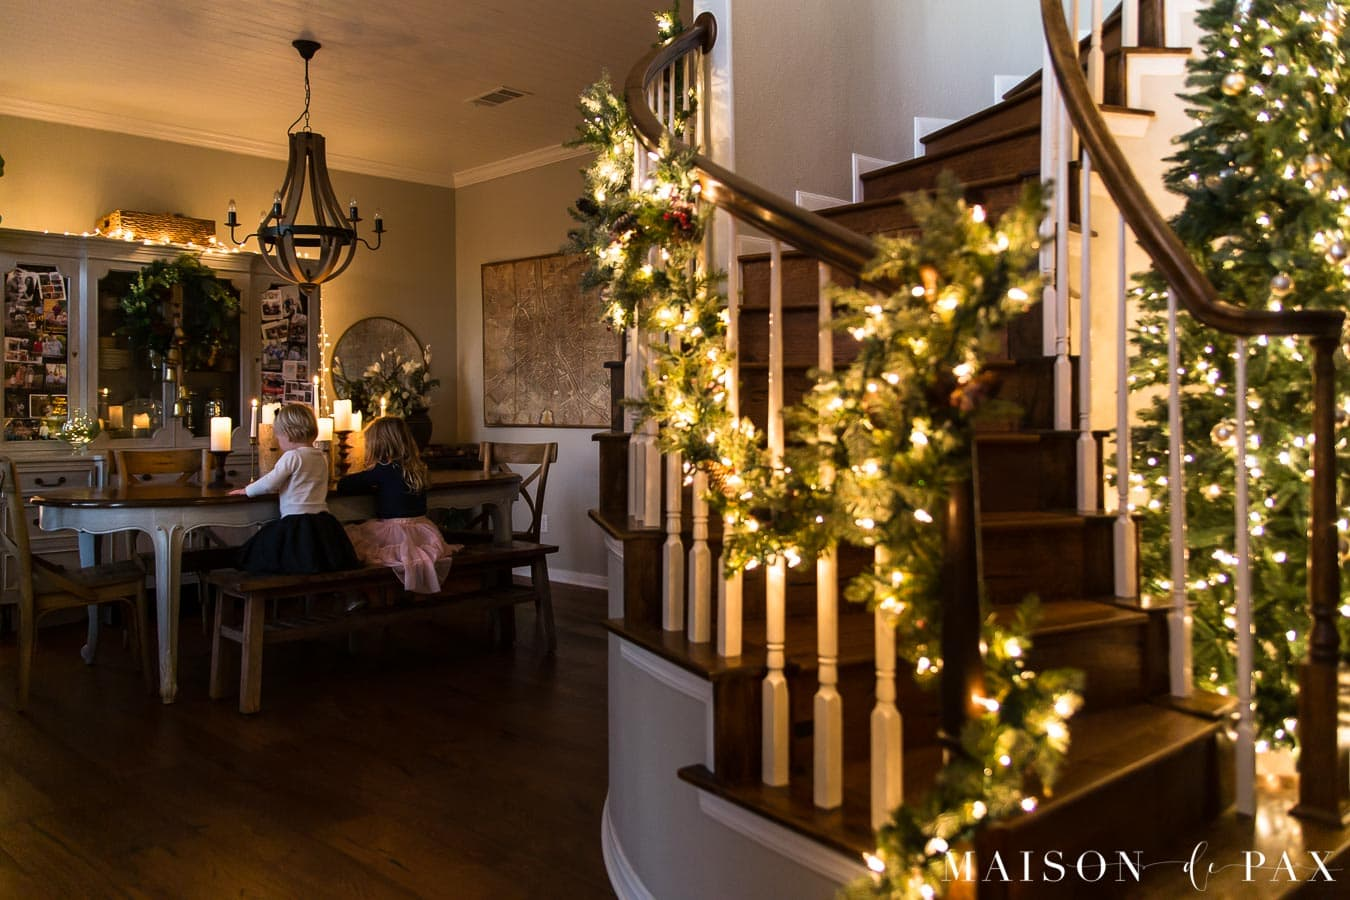 curved stairwell with lit garland by dining room | Maison de Pax